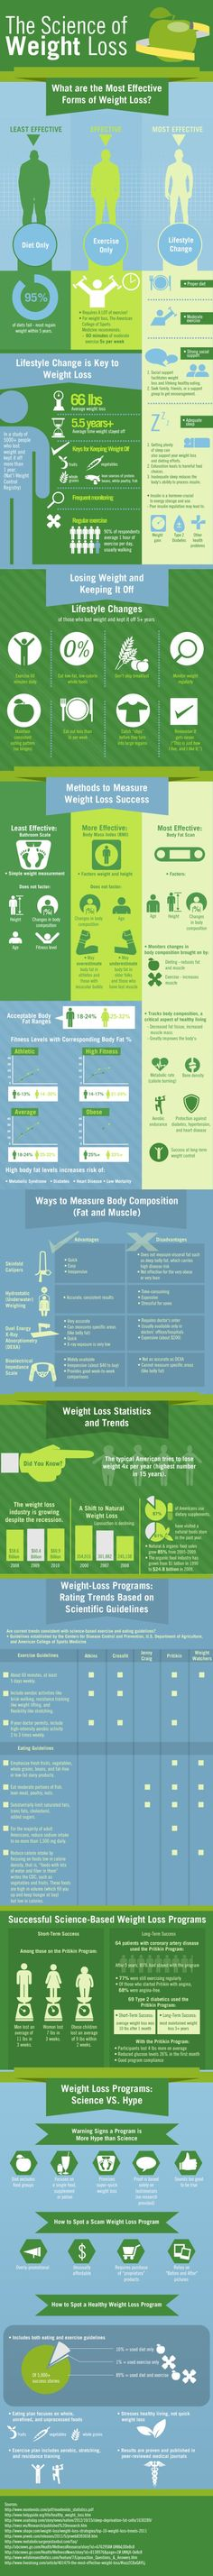 1 the science of weight loss